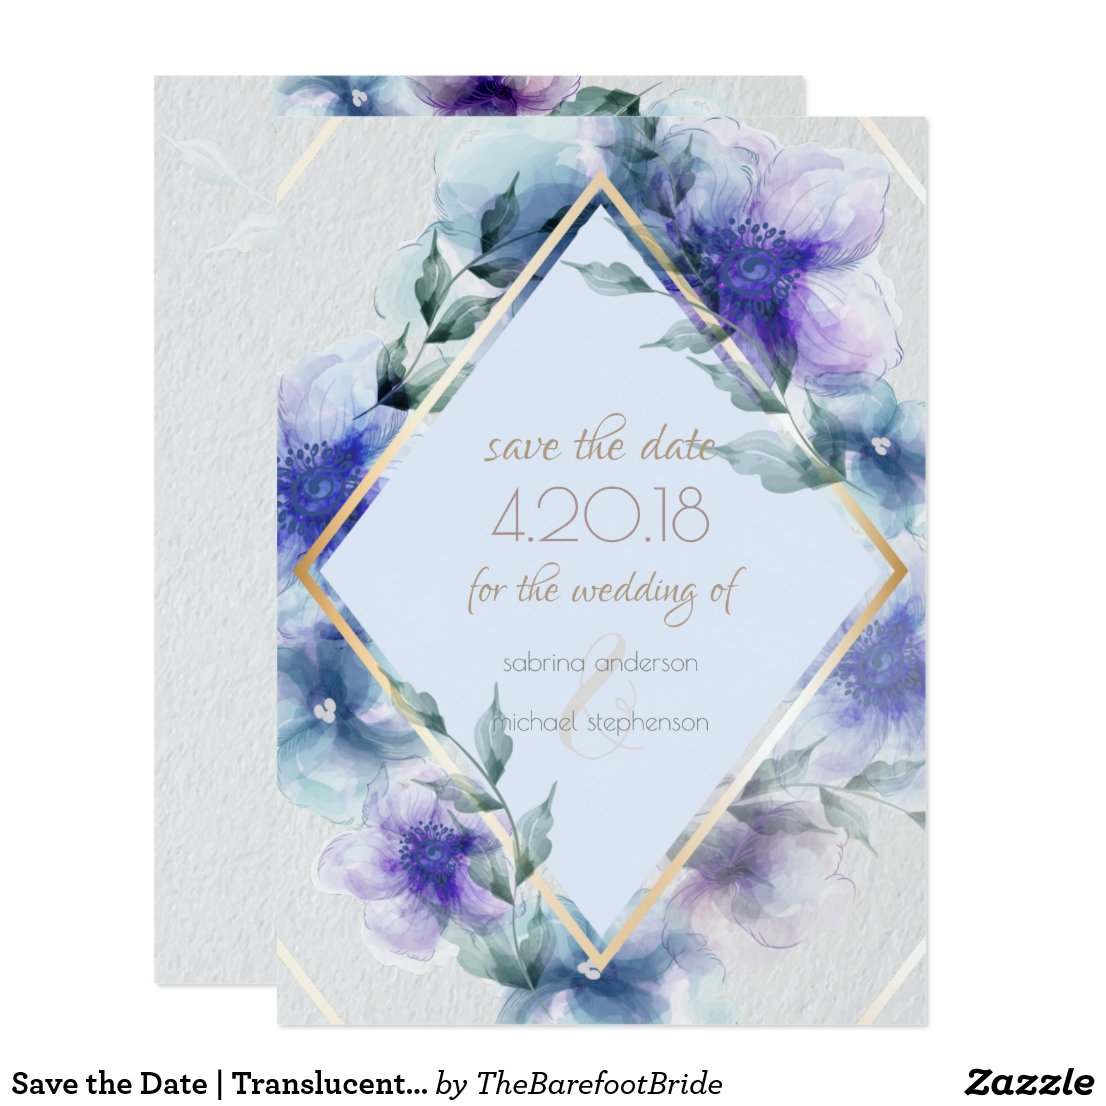 Save the Date | Translucent Watercolor Flowers Invitation